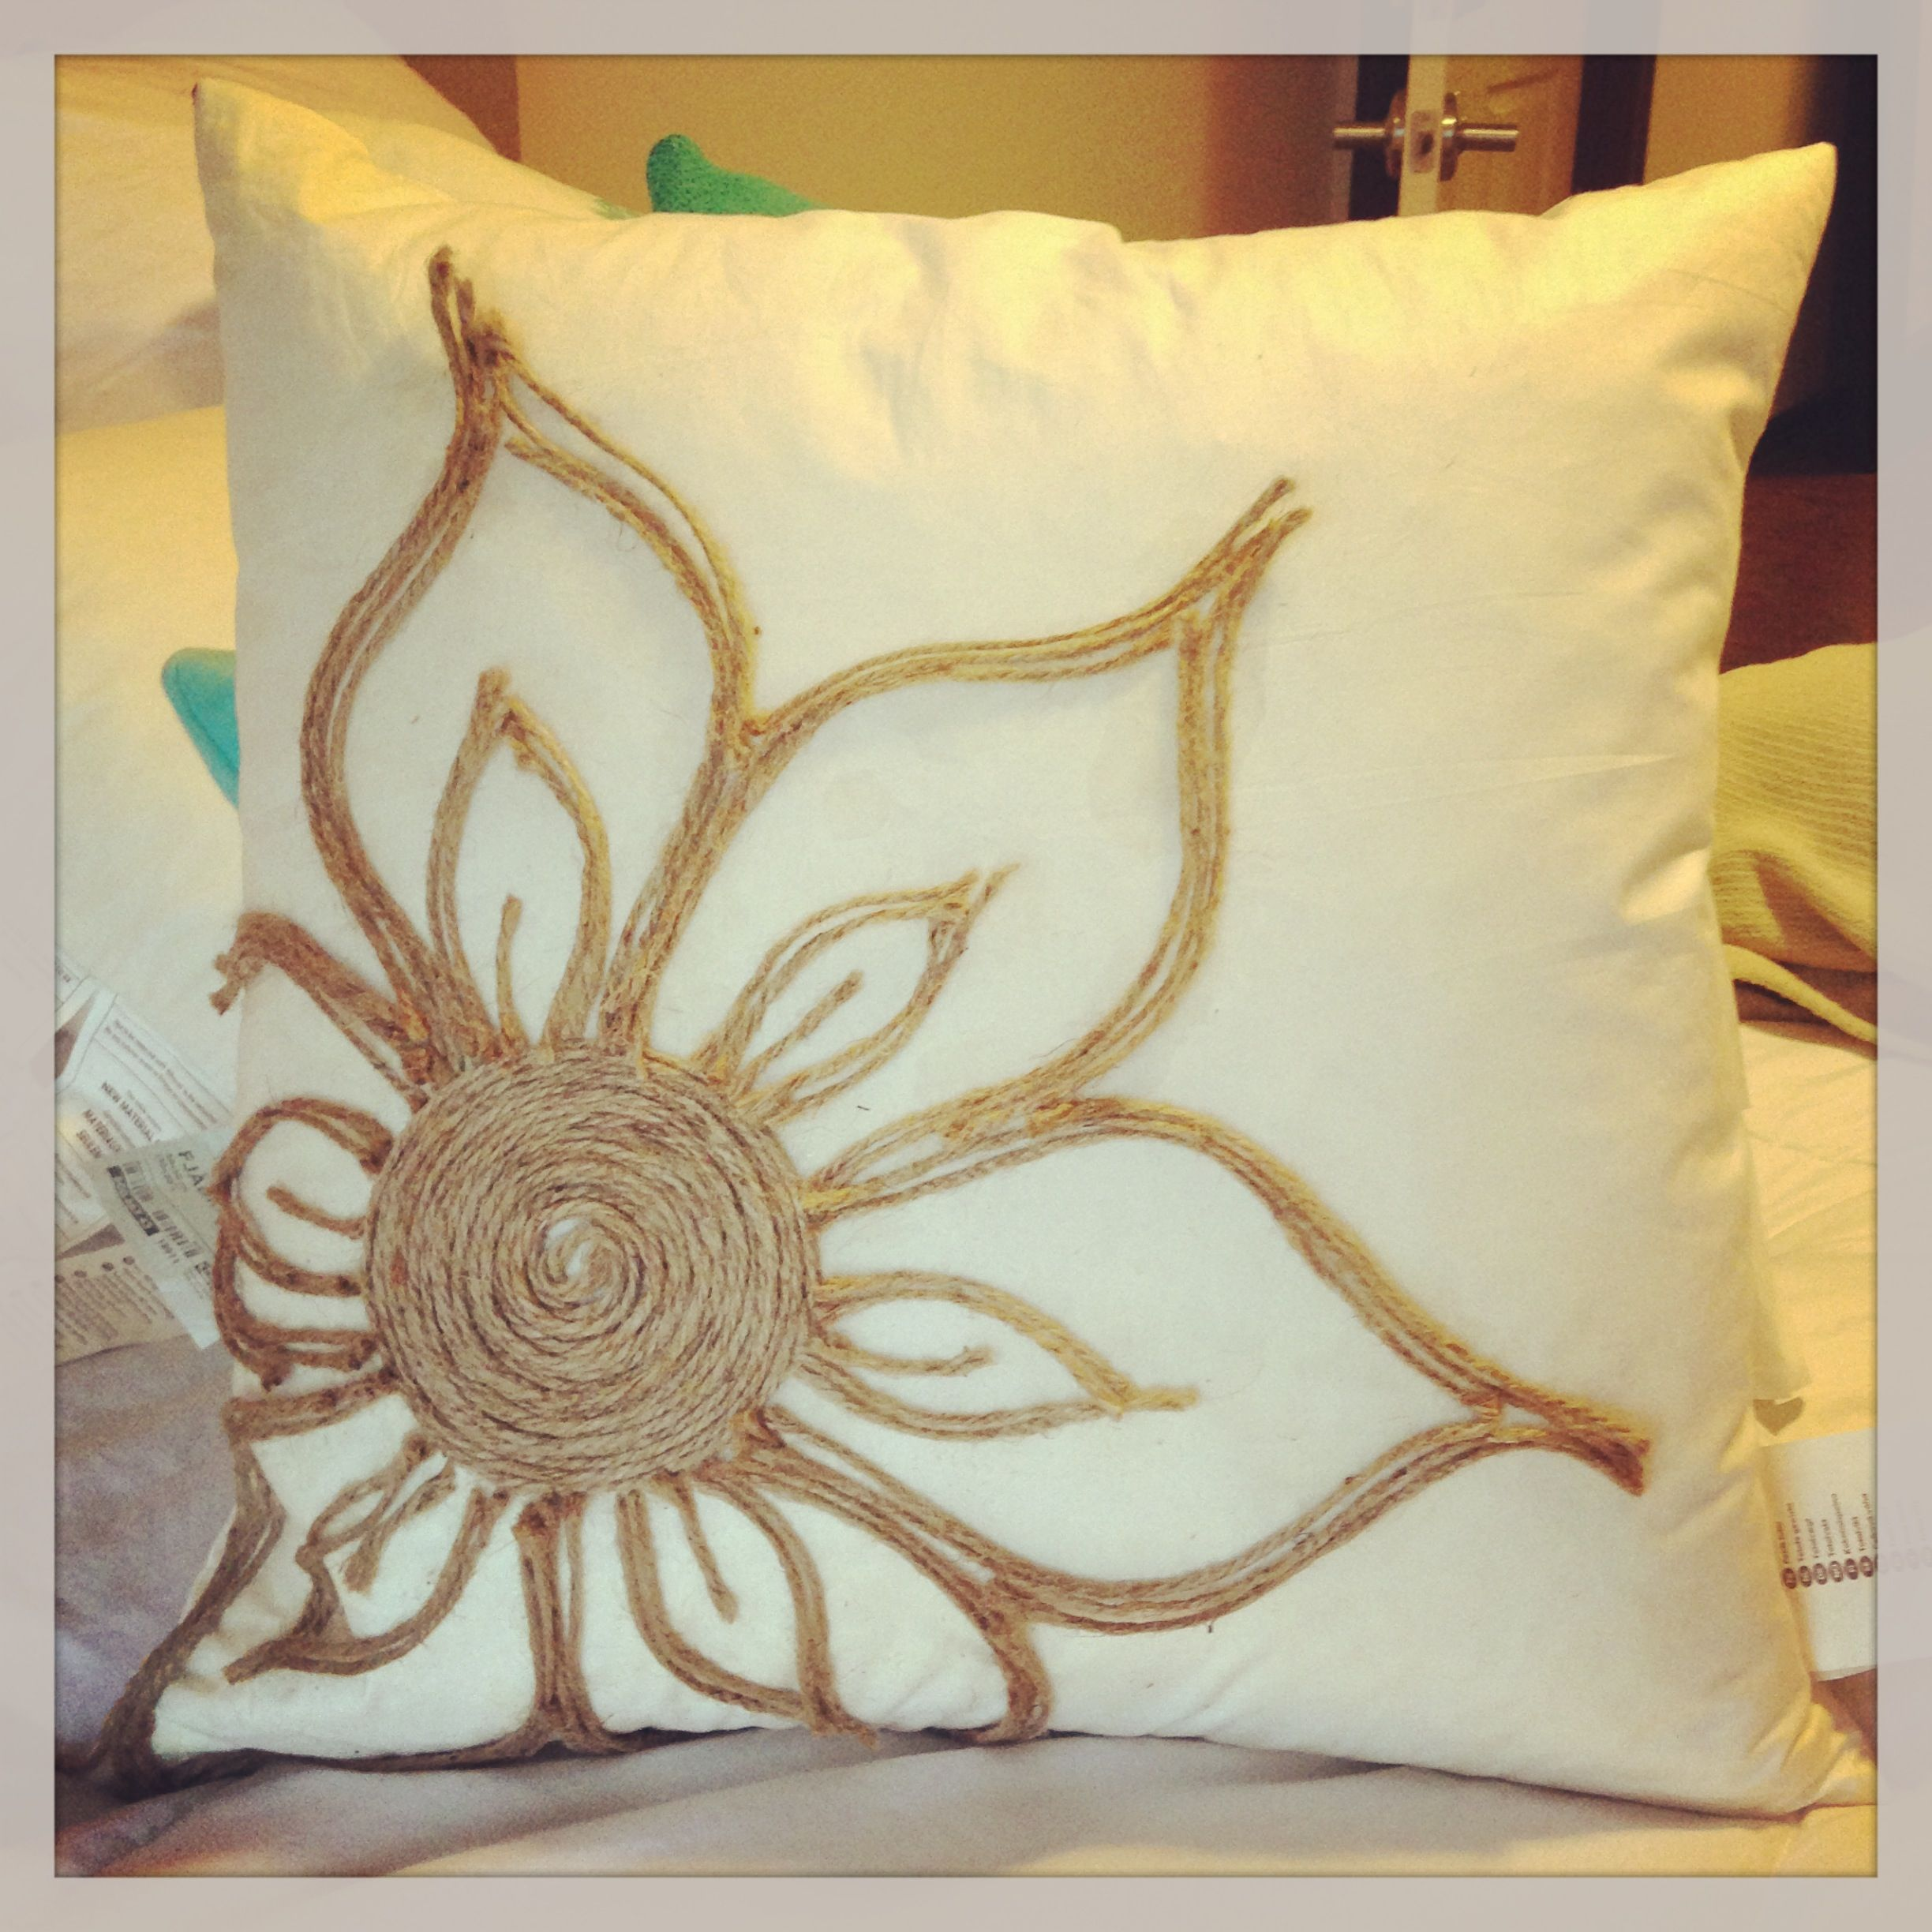 Diy pillow just need glue and hemp bedroom diy pinterest